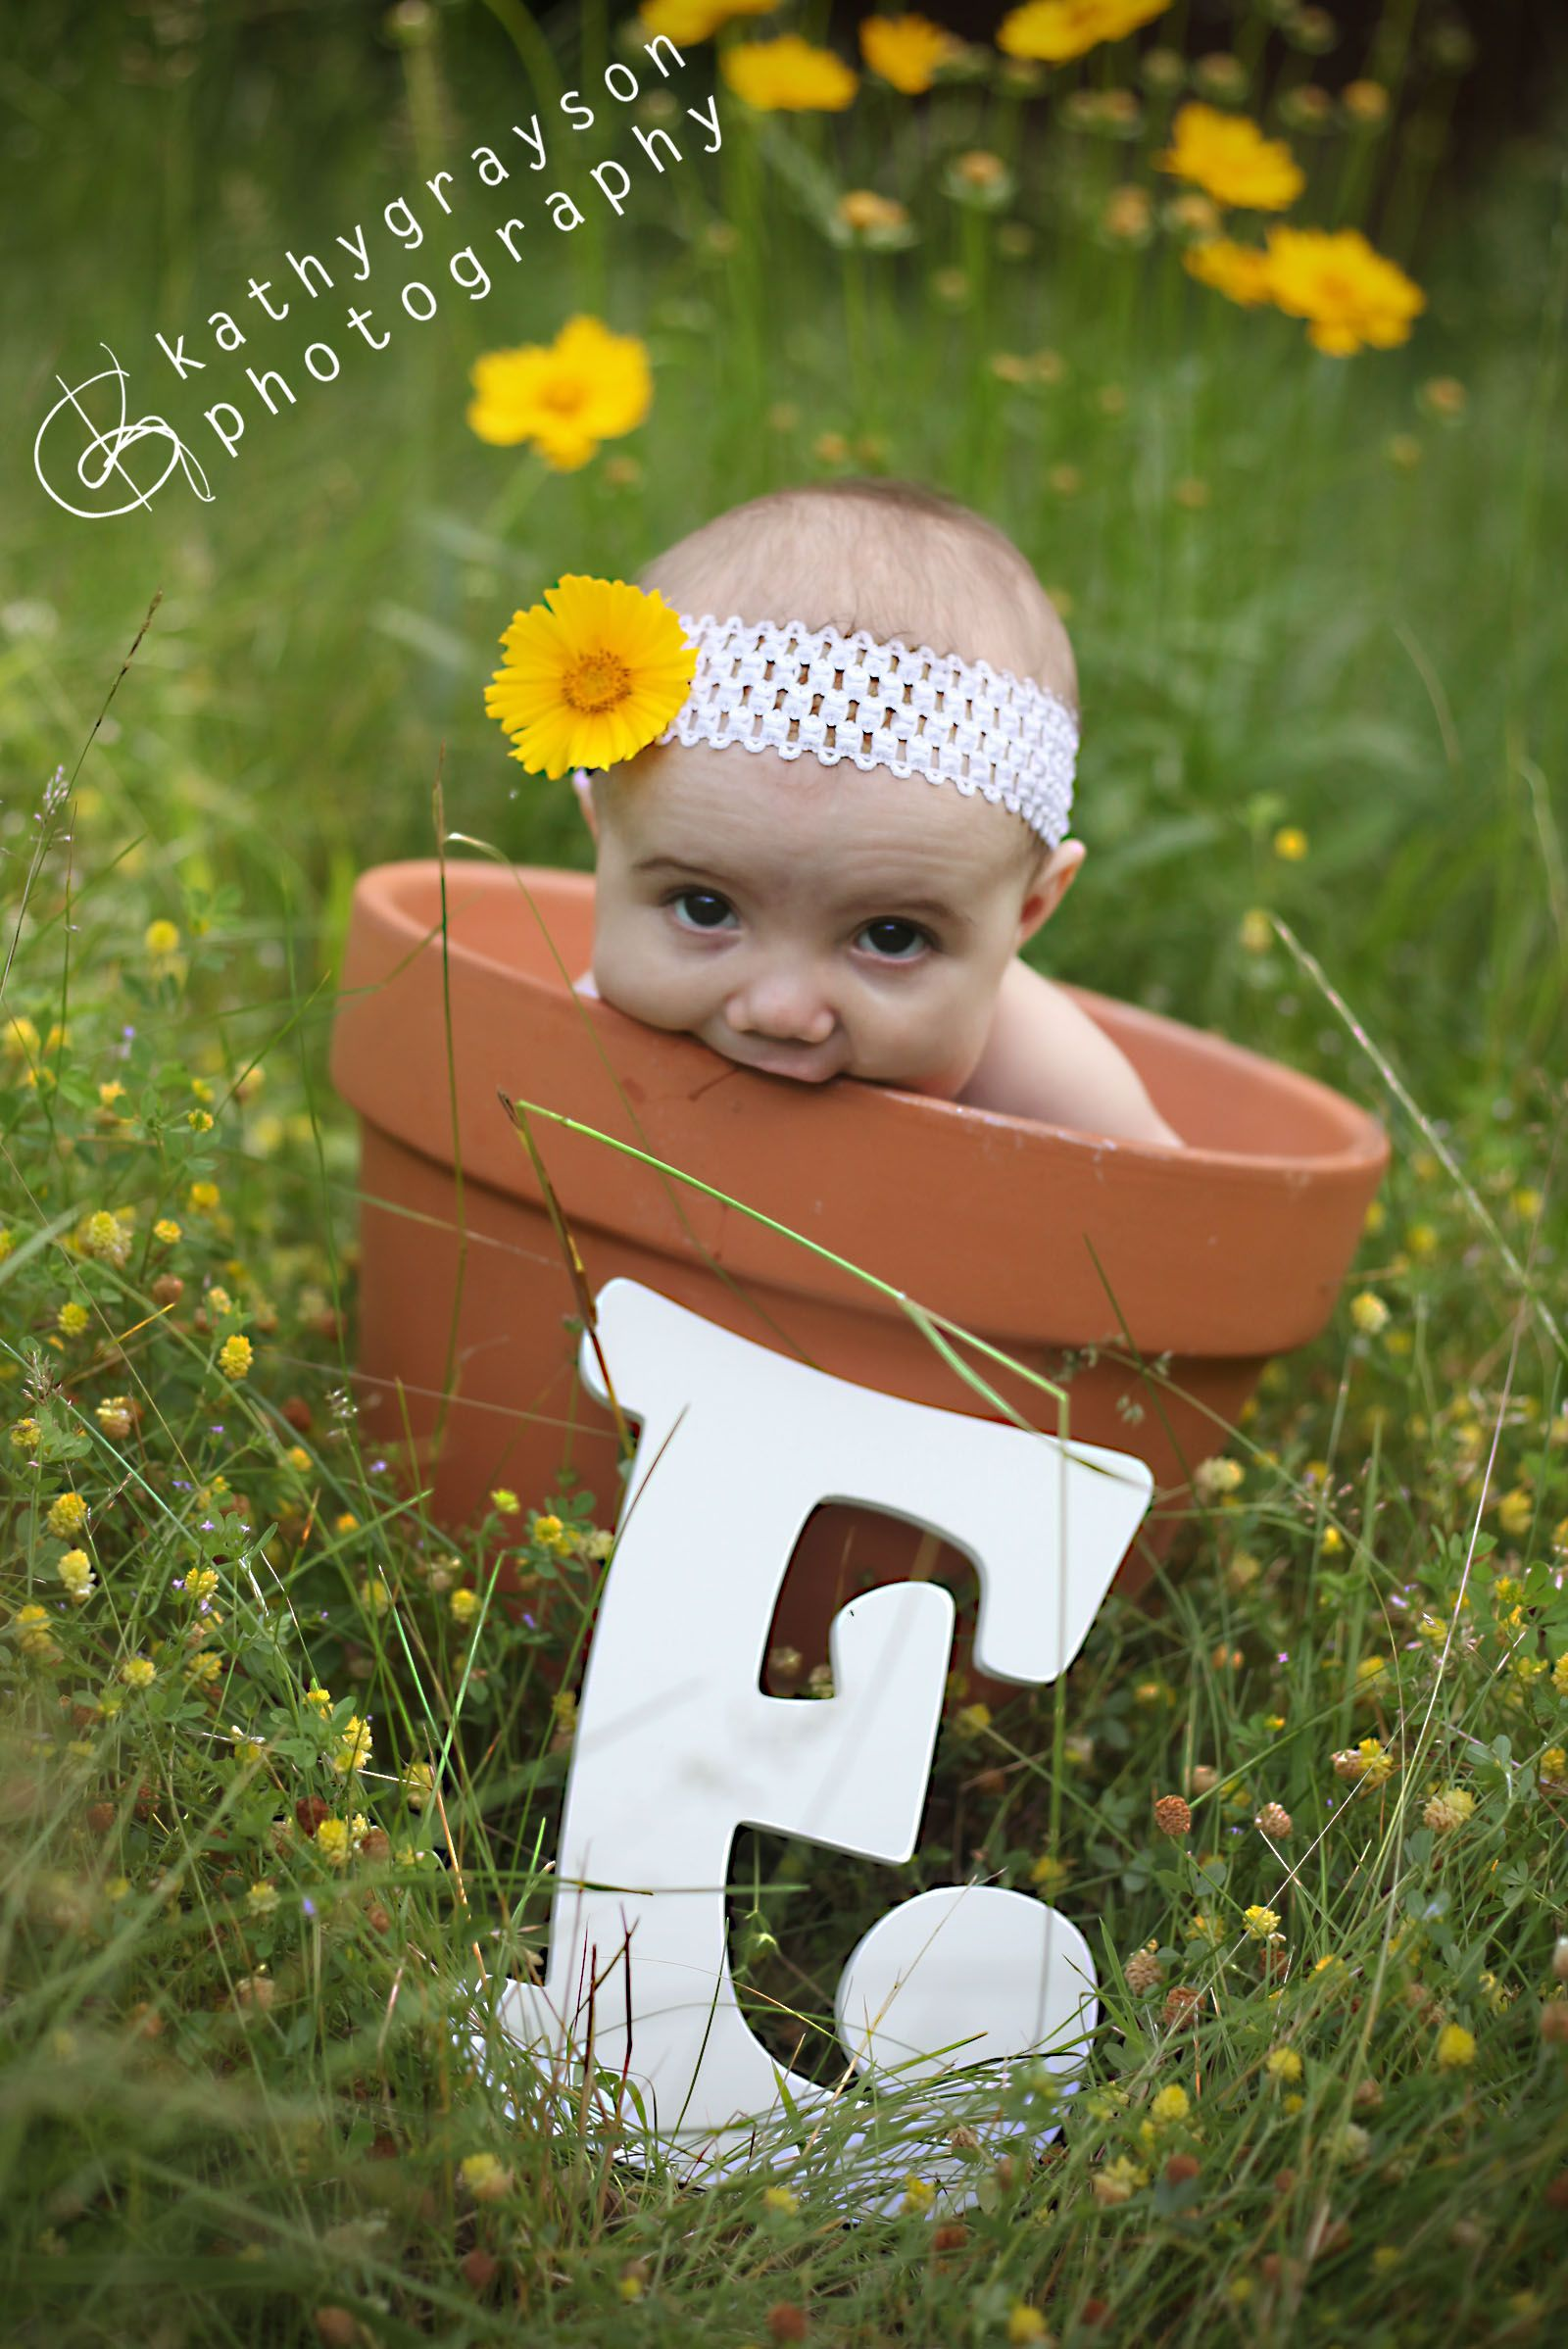 75edcad64 4-month-old baby, outdoor baby photos | Diy photography Props ...